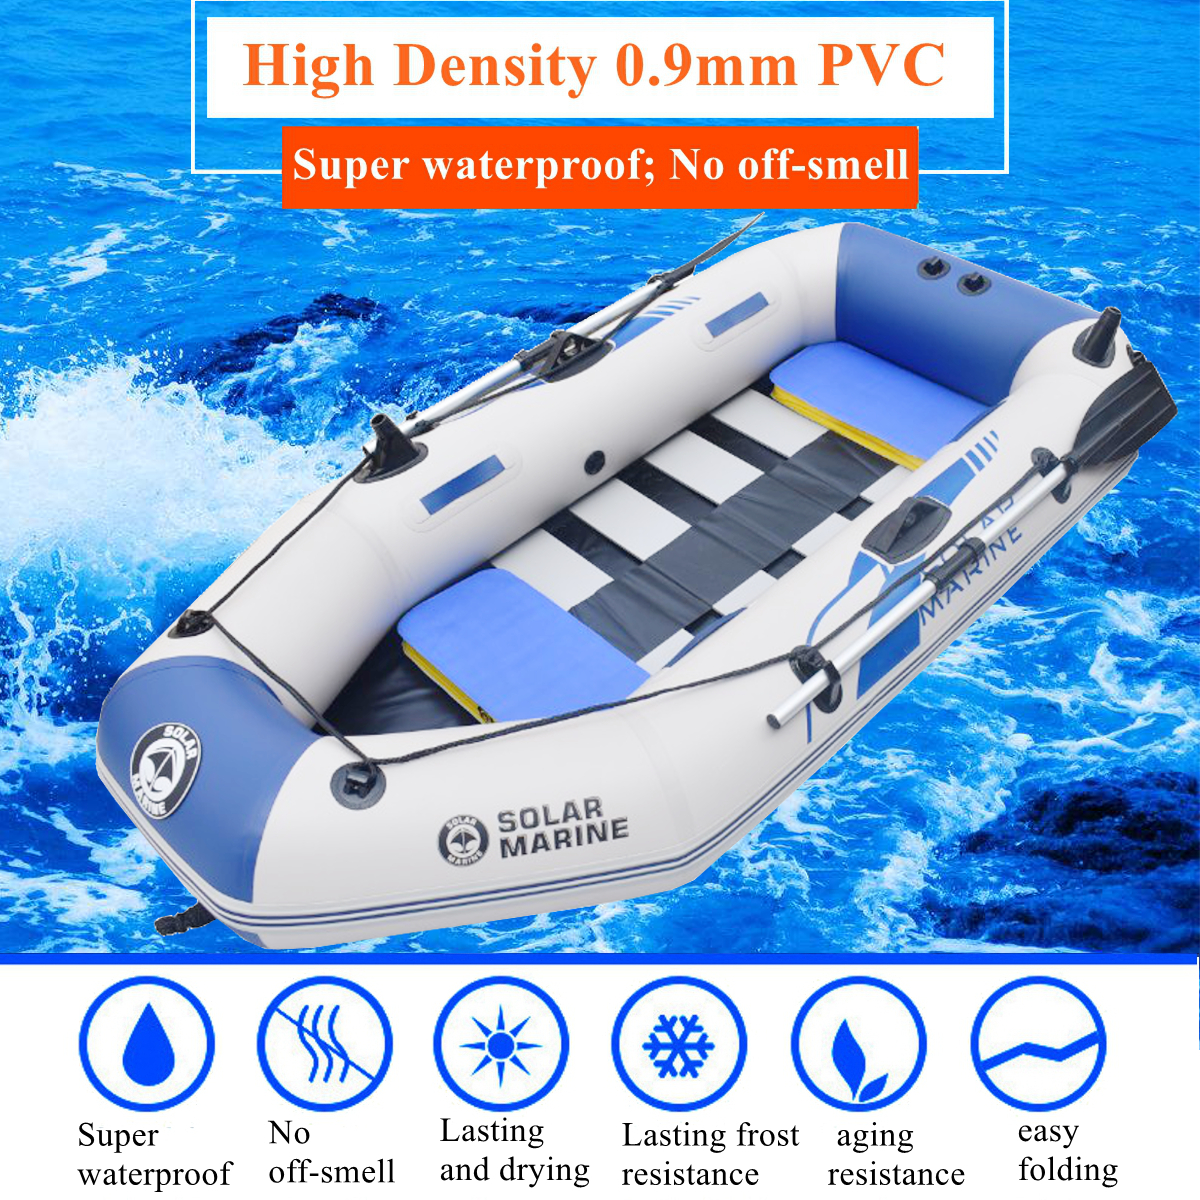 7.5Ft 3-4 Person Inflatable Fishing Boat Set Kayak Dinghy Yacht Tender Pontoon with 2 Oars, Air Pump & Bag